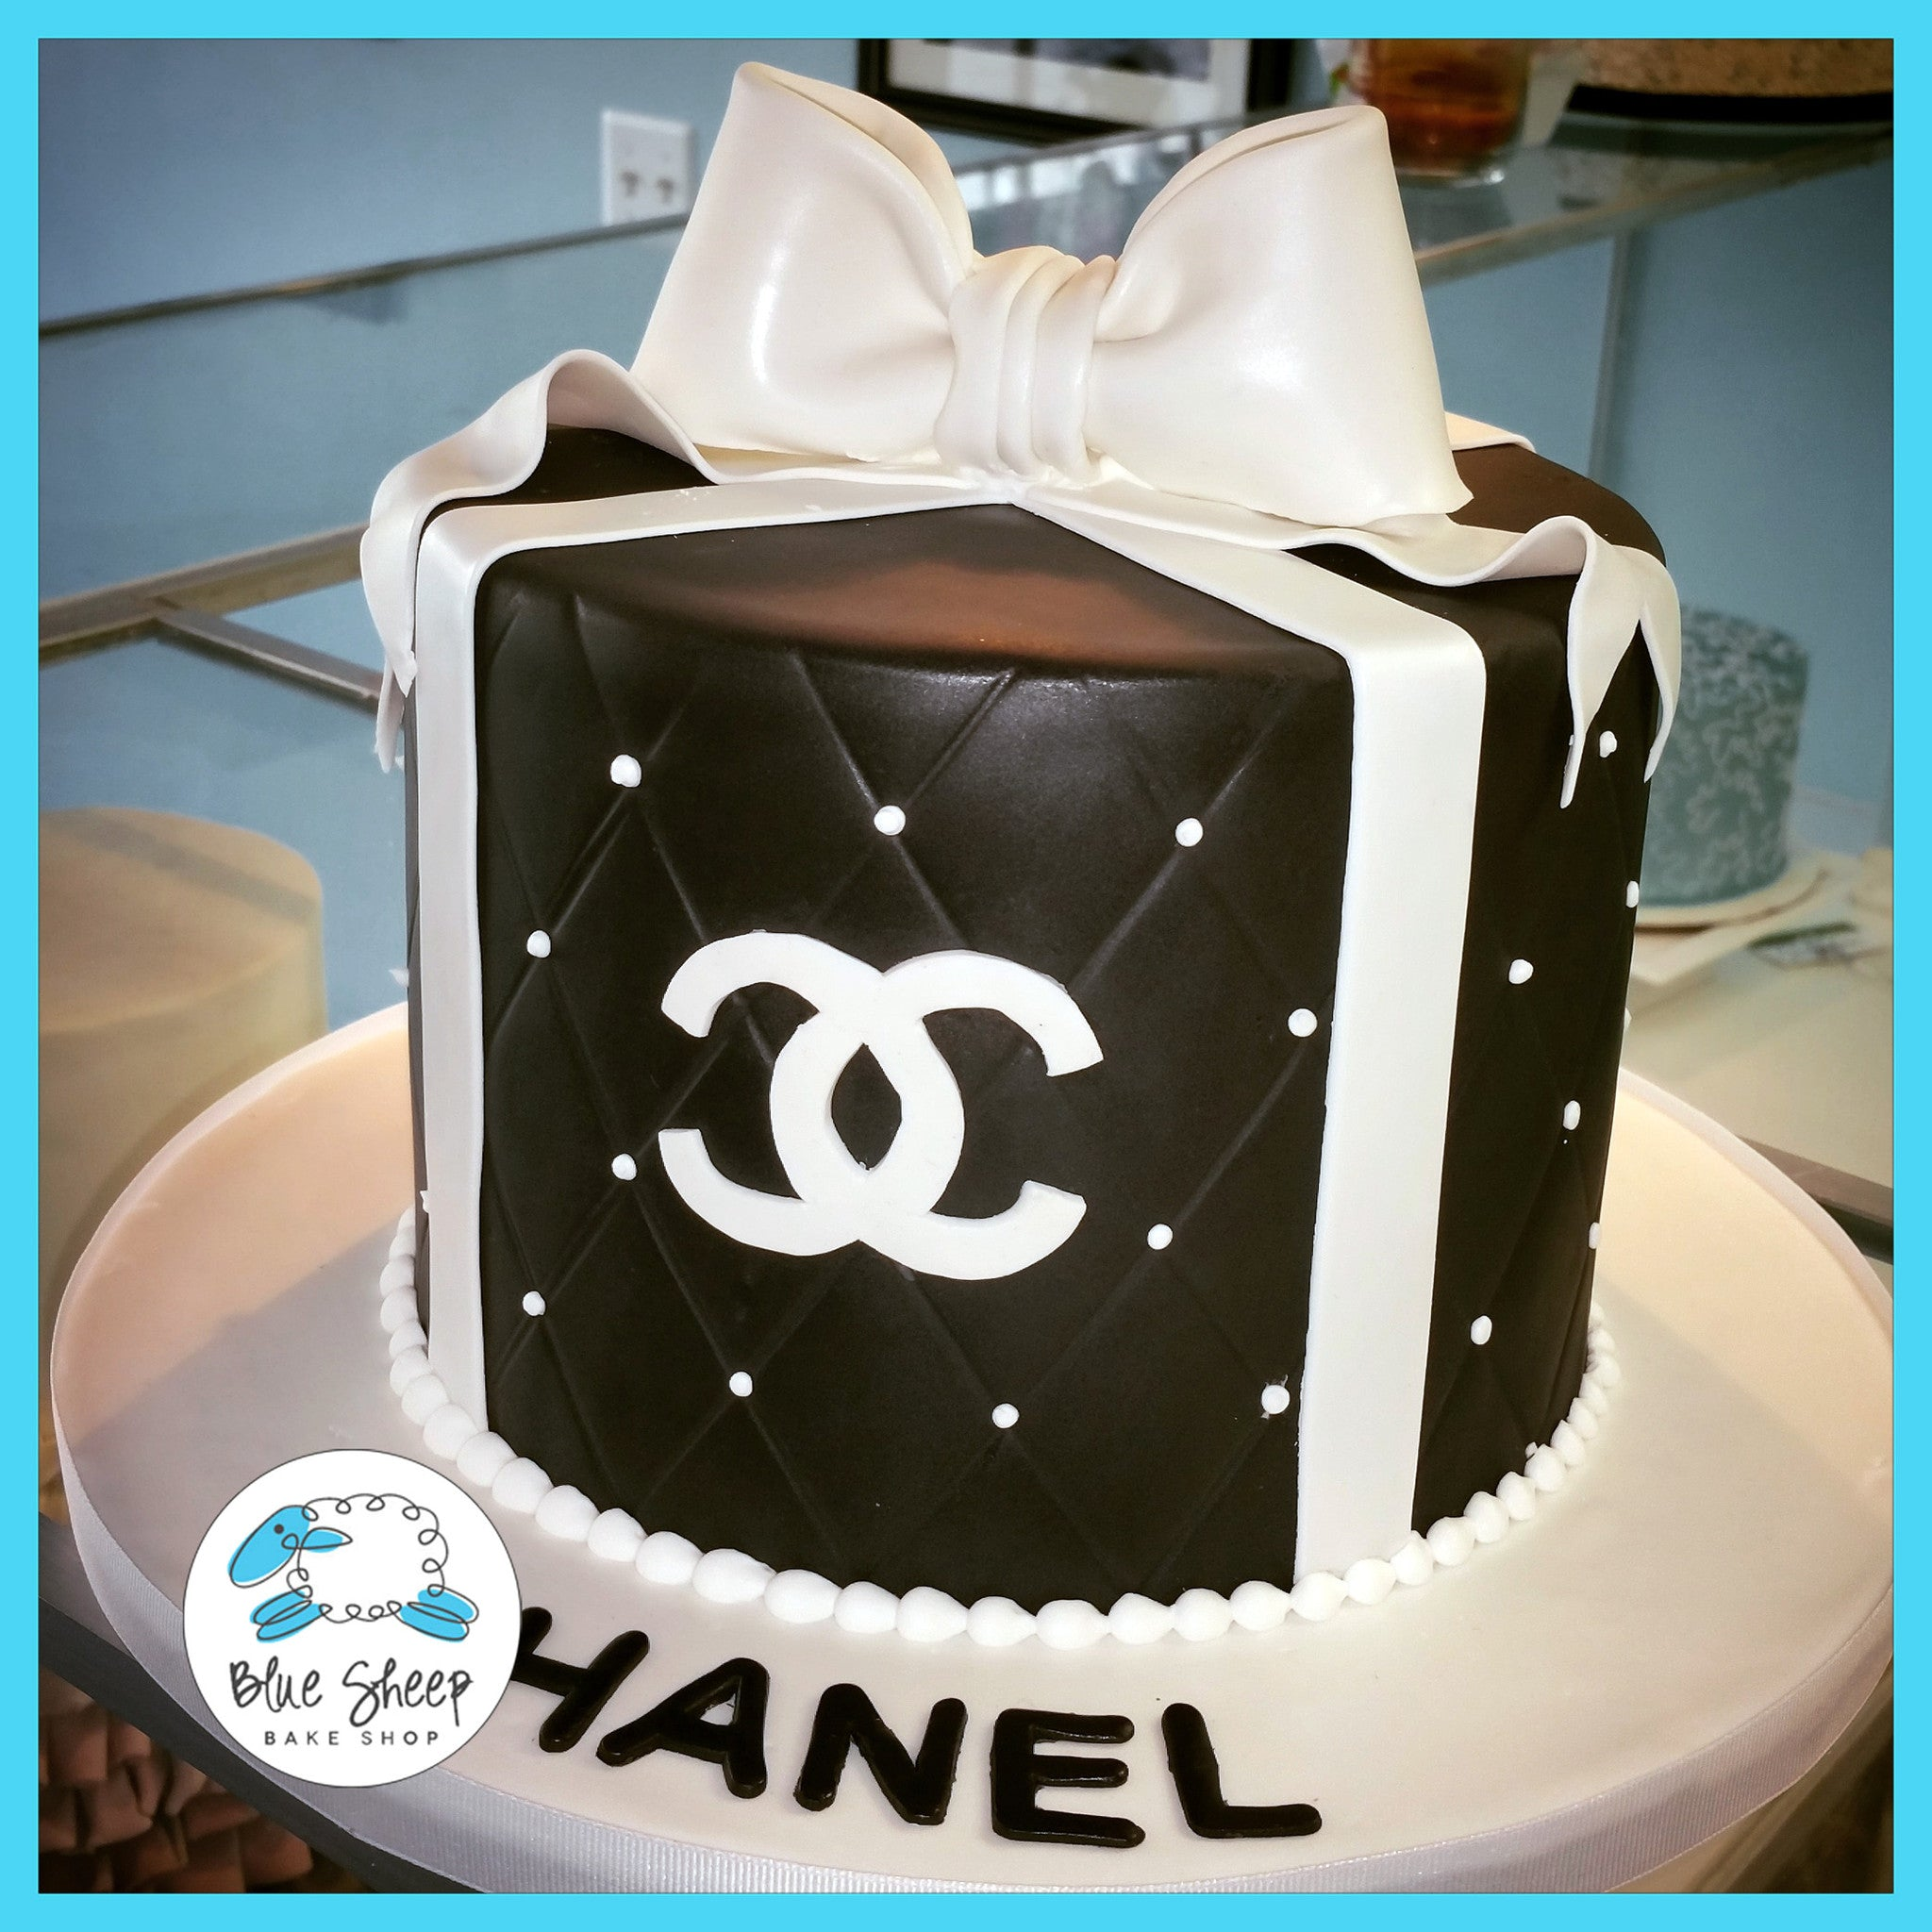 Black And White Chanel Birthday Cake Blue Sheep Bake Shop